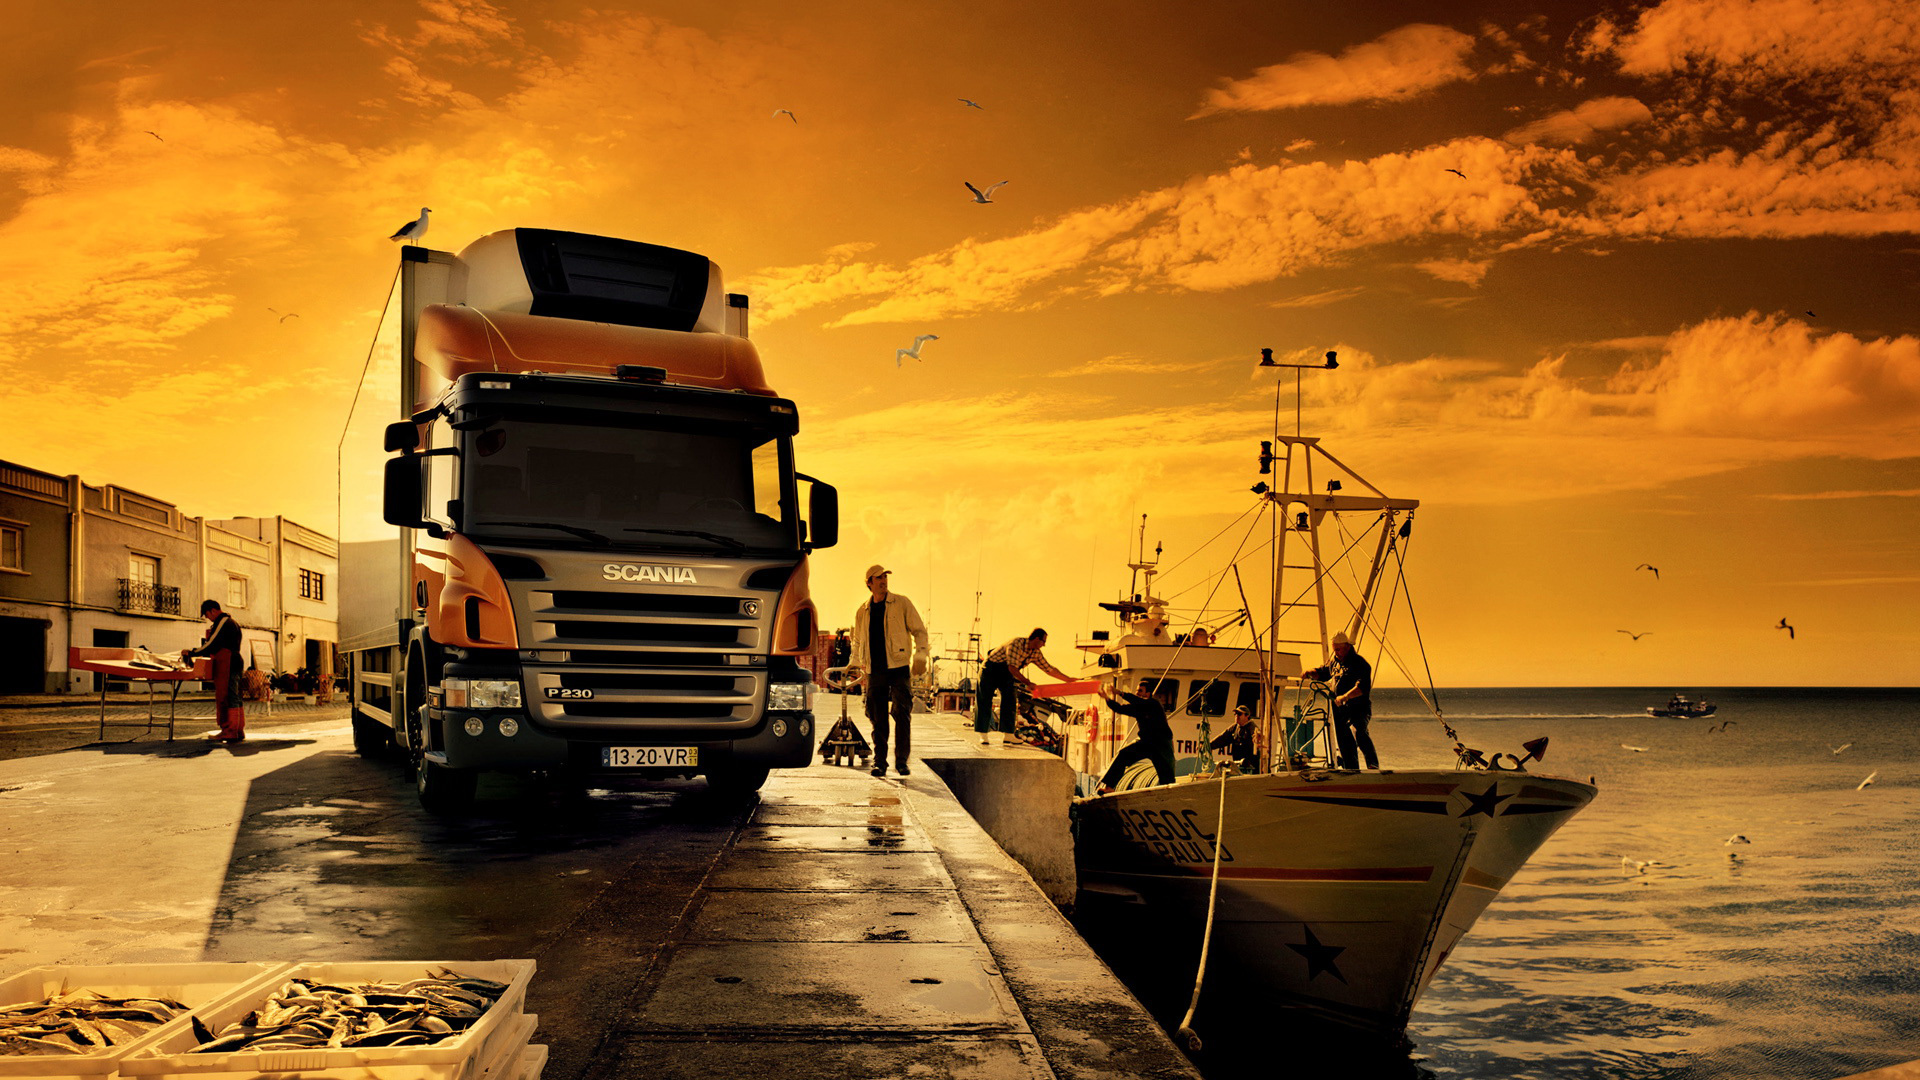 Used Scania Trucks: A Trustworthy Solution To Your